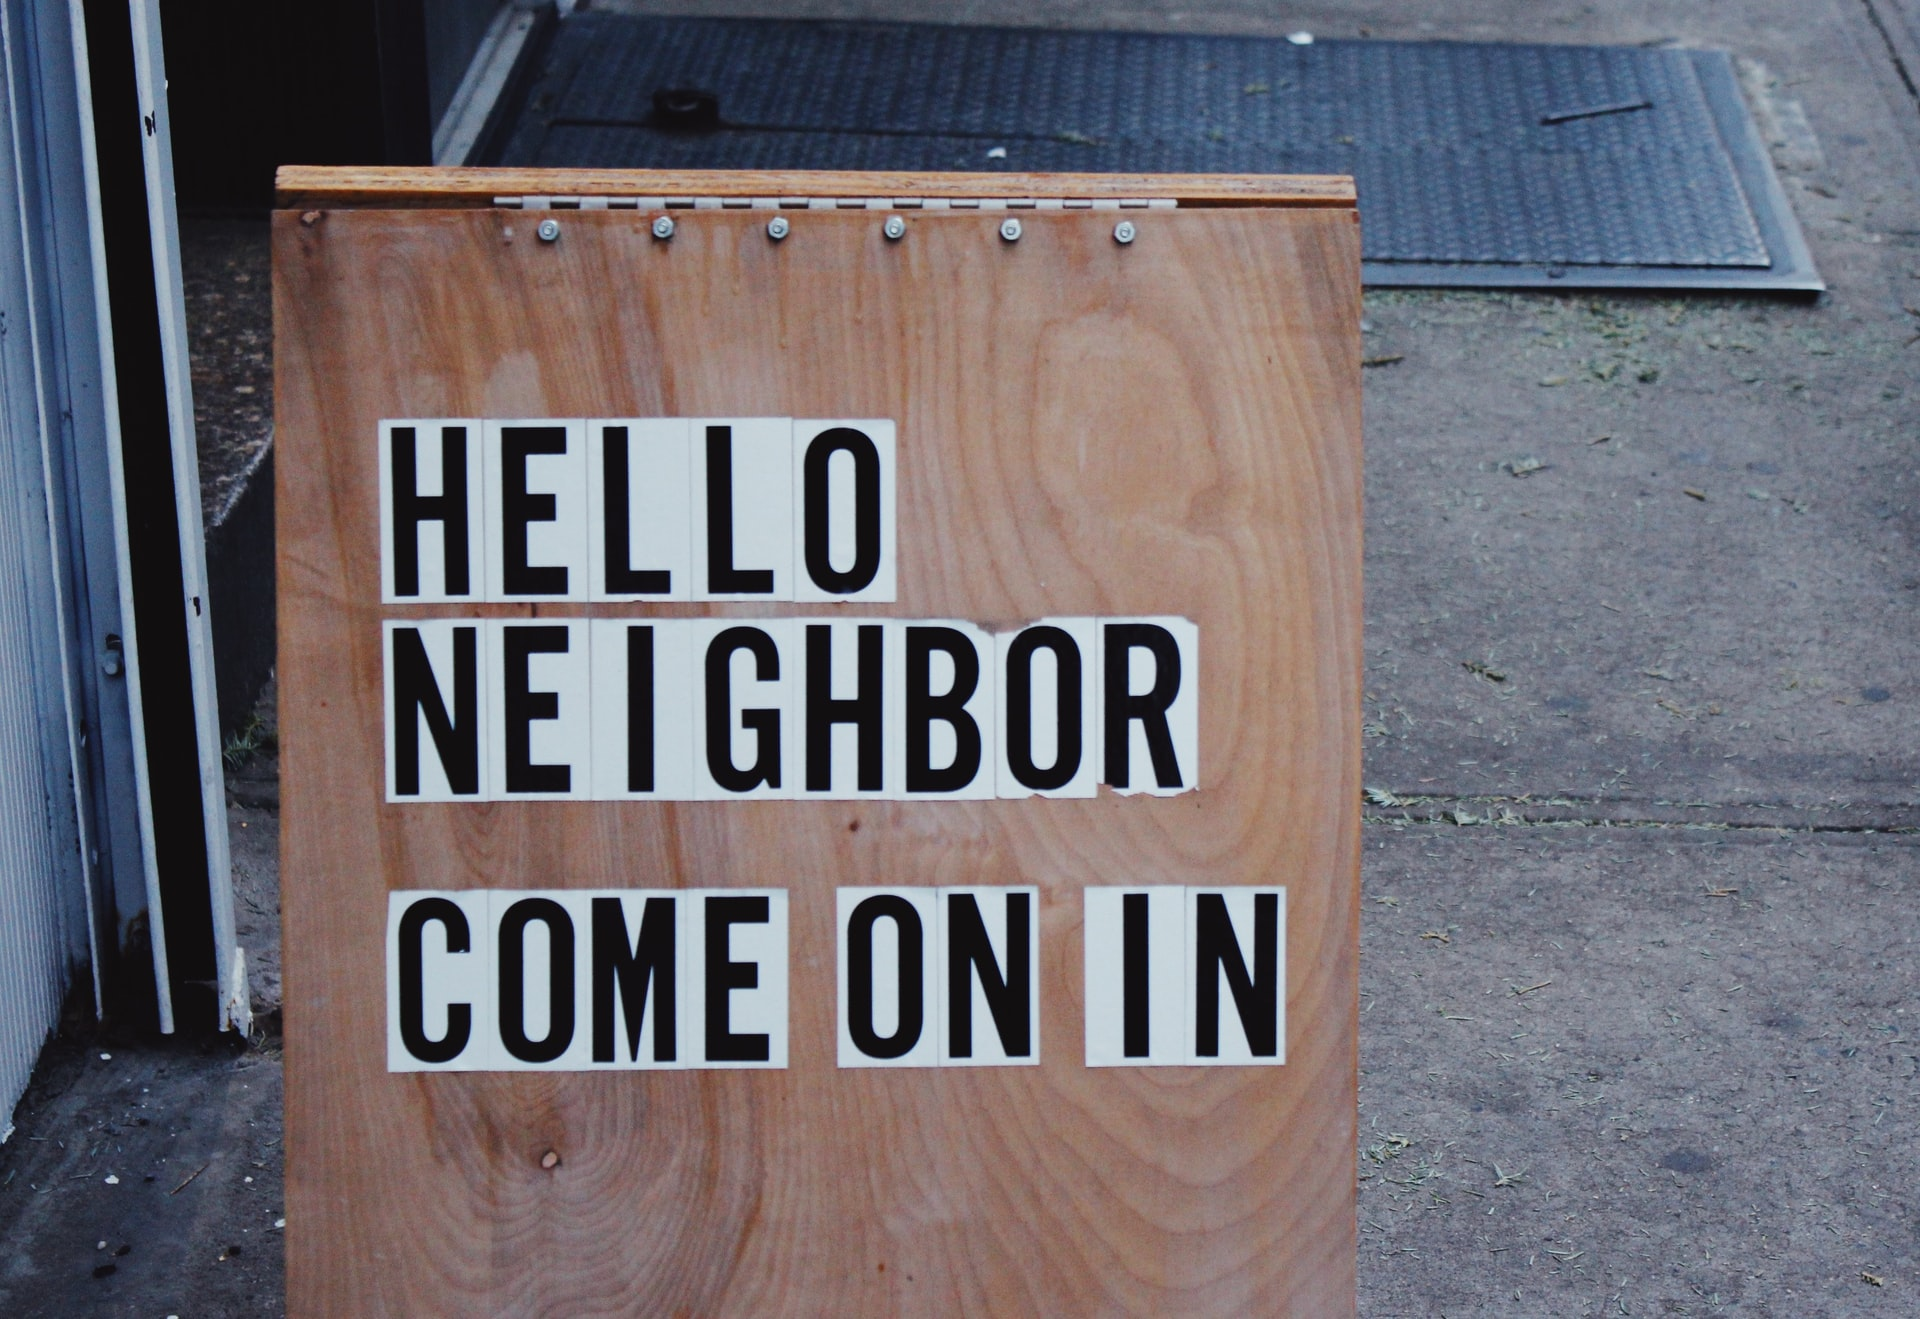 Hello Neighbor, come on in